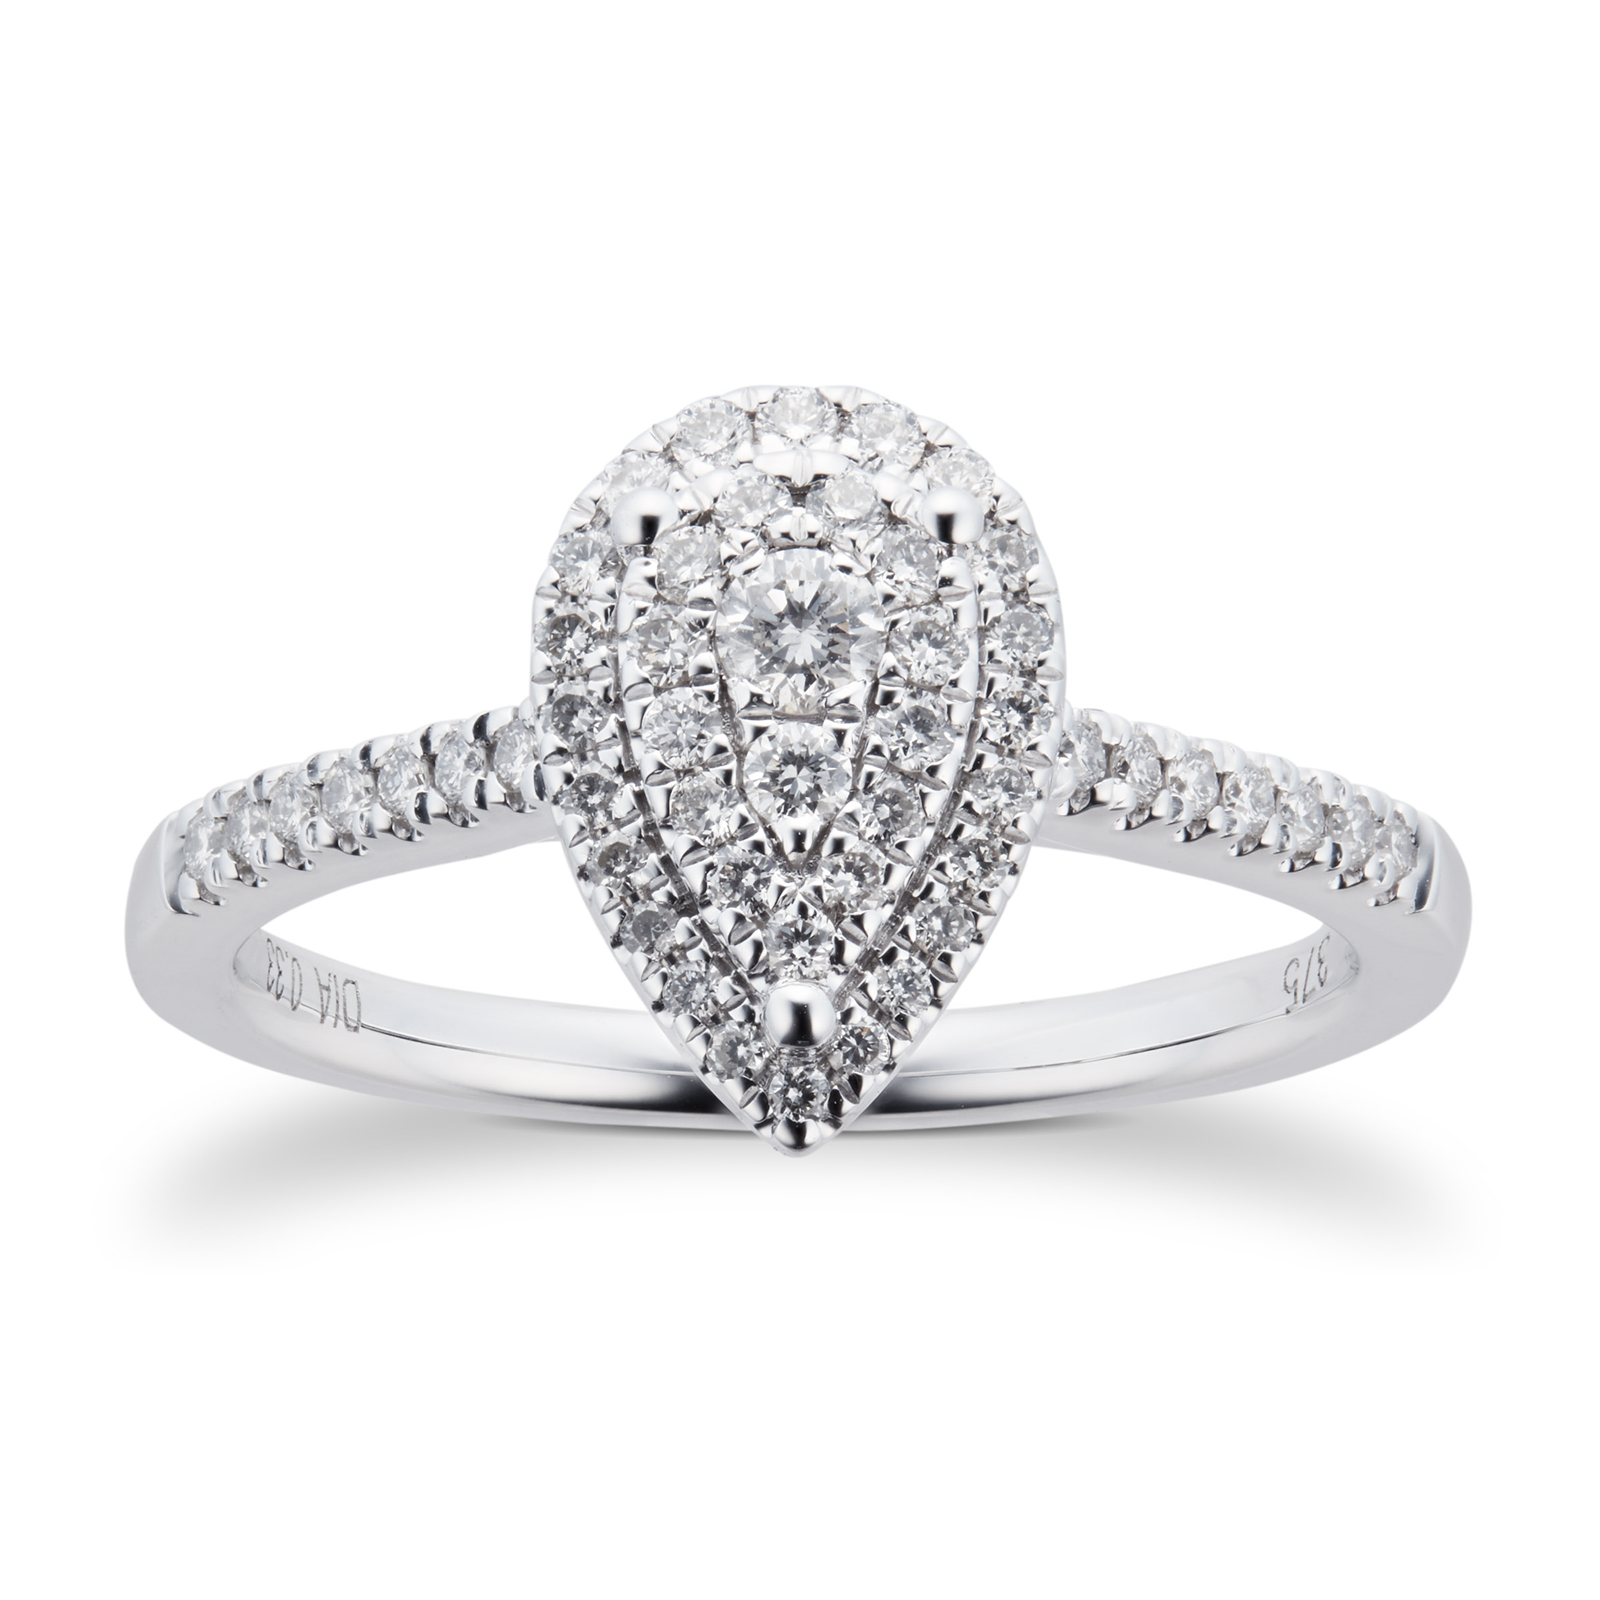 simon engagement an brides every for g band rings gold in set priced bride shaped gallery white from diamond pear